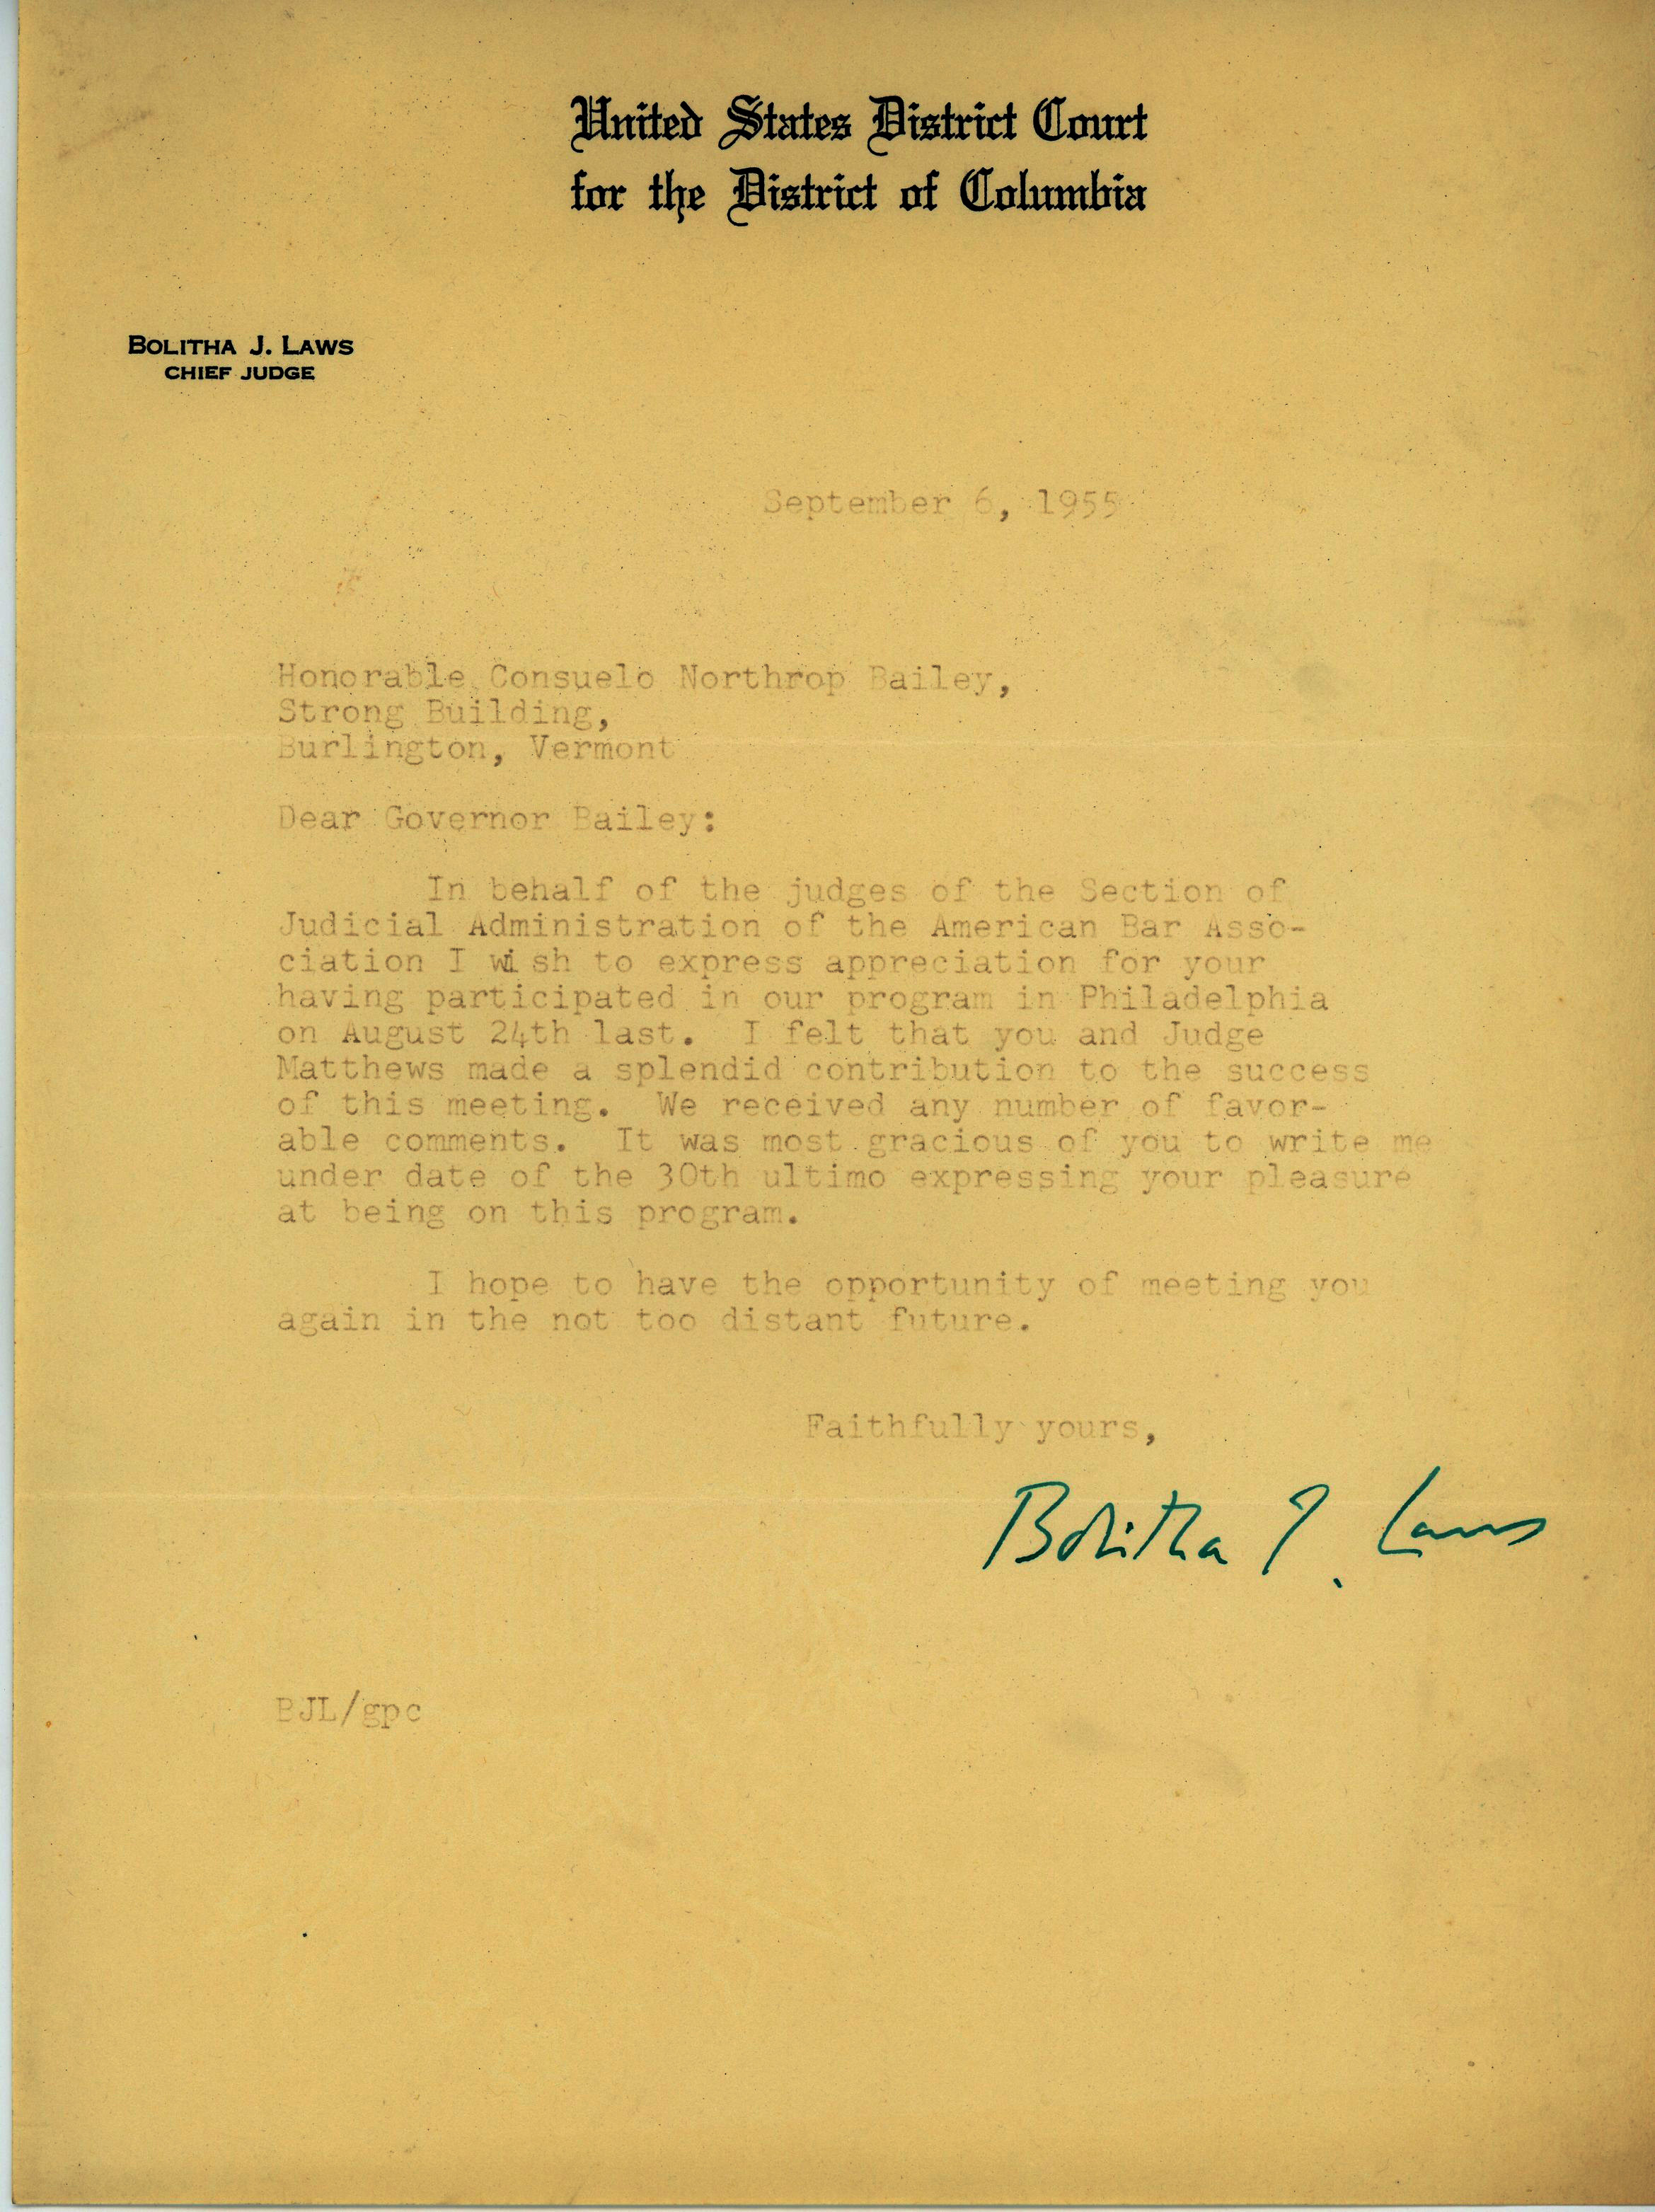 Chief Judge Bolitha J. Laws to Consuelo Northrop Bailey 1955 September 6